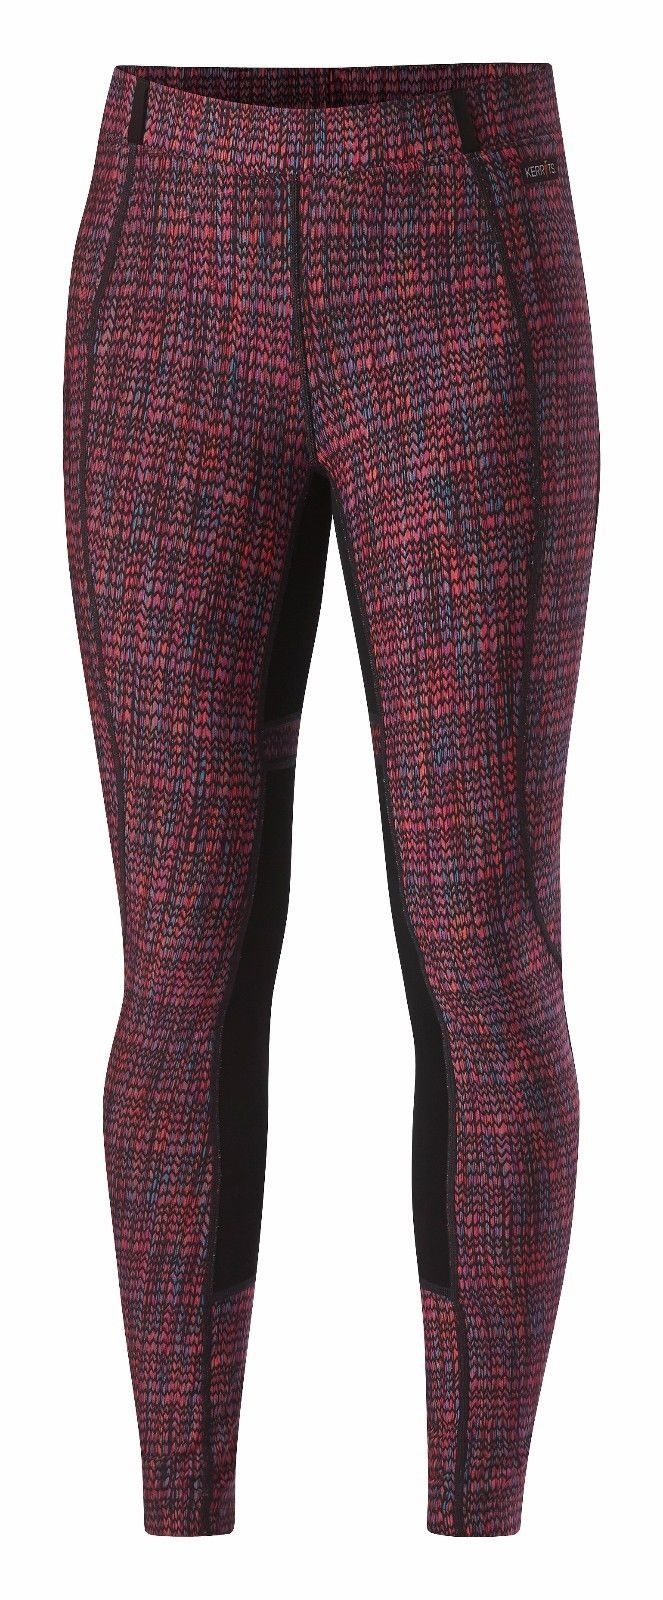 Kerrits Children's Kerrits Performance Tight Berry Mirage Small (Reg $49.95 Now 30% OFF!)